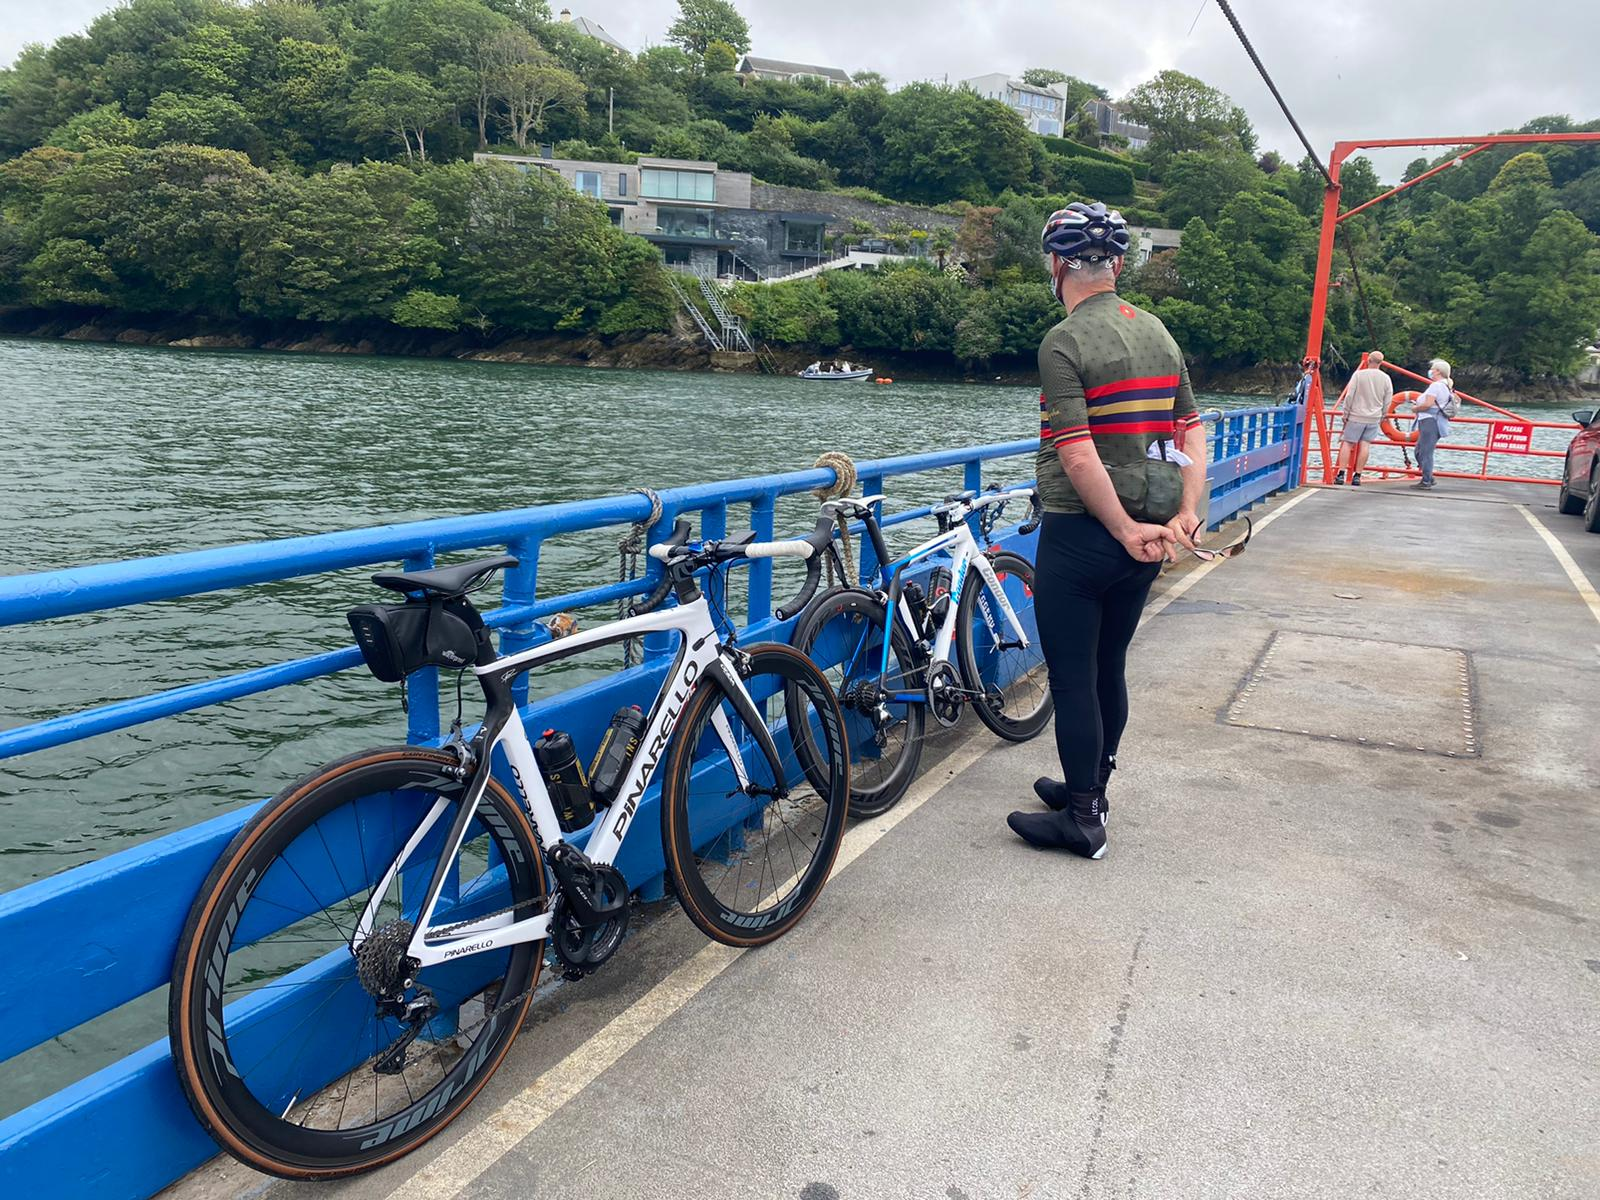 Day 2 - Fowey to Bovey Tracey